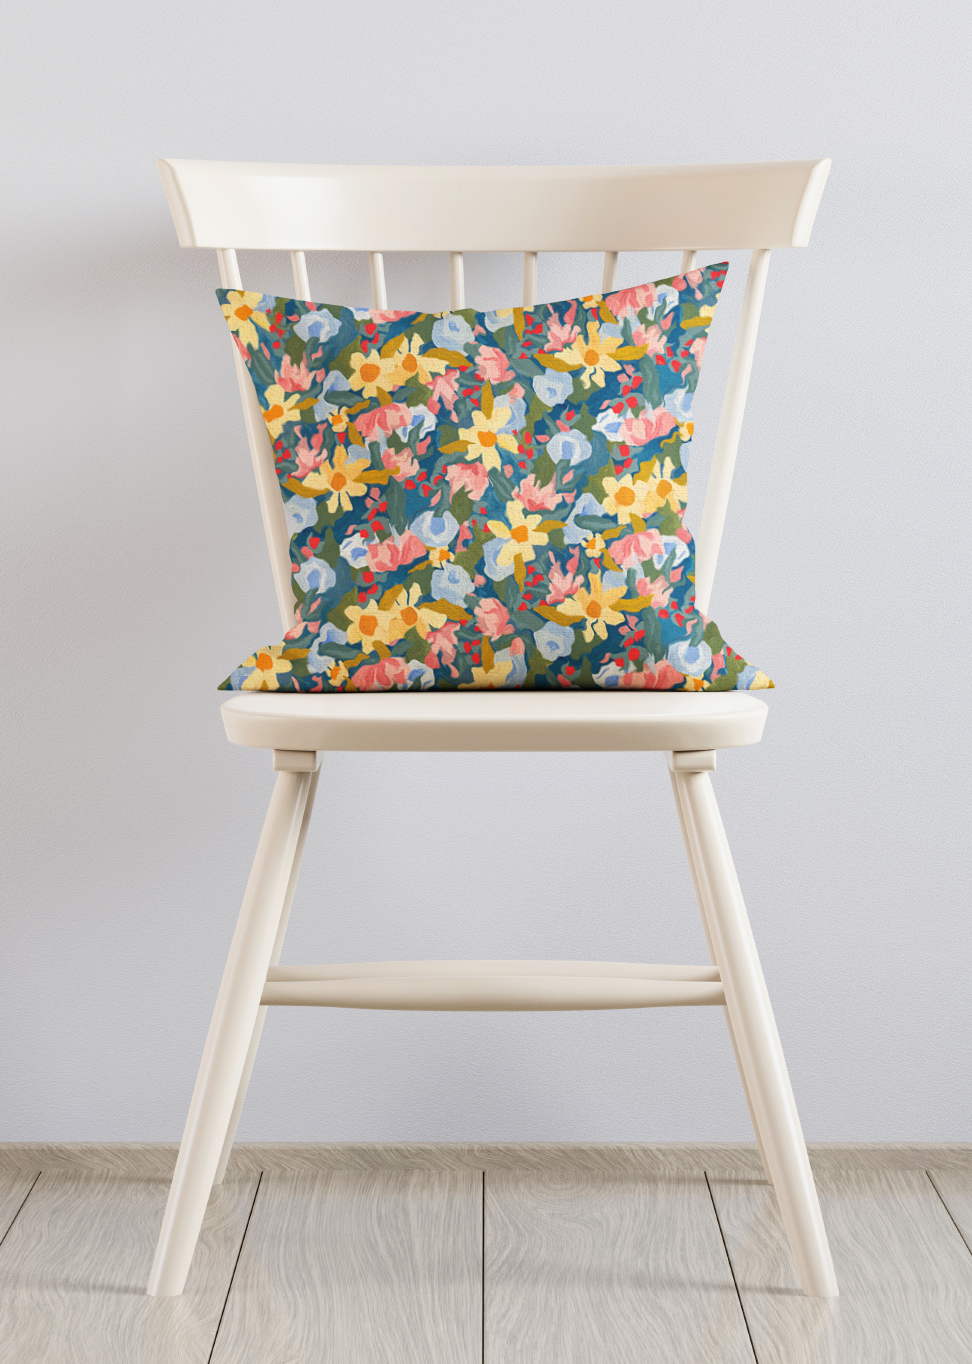 Pillow Chair Blooming Garden 1